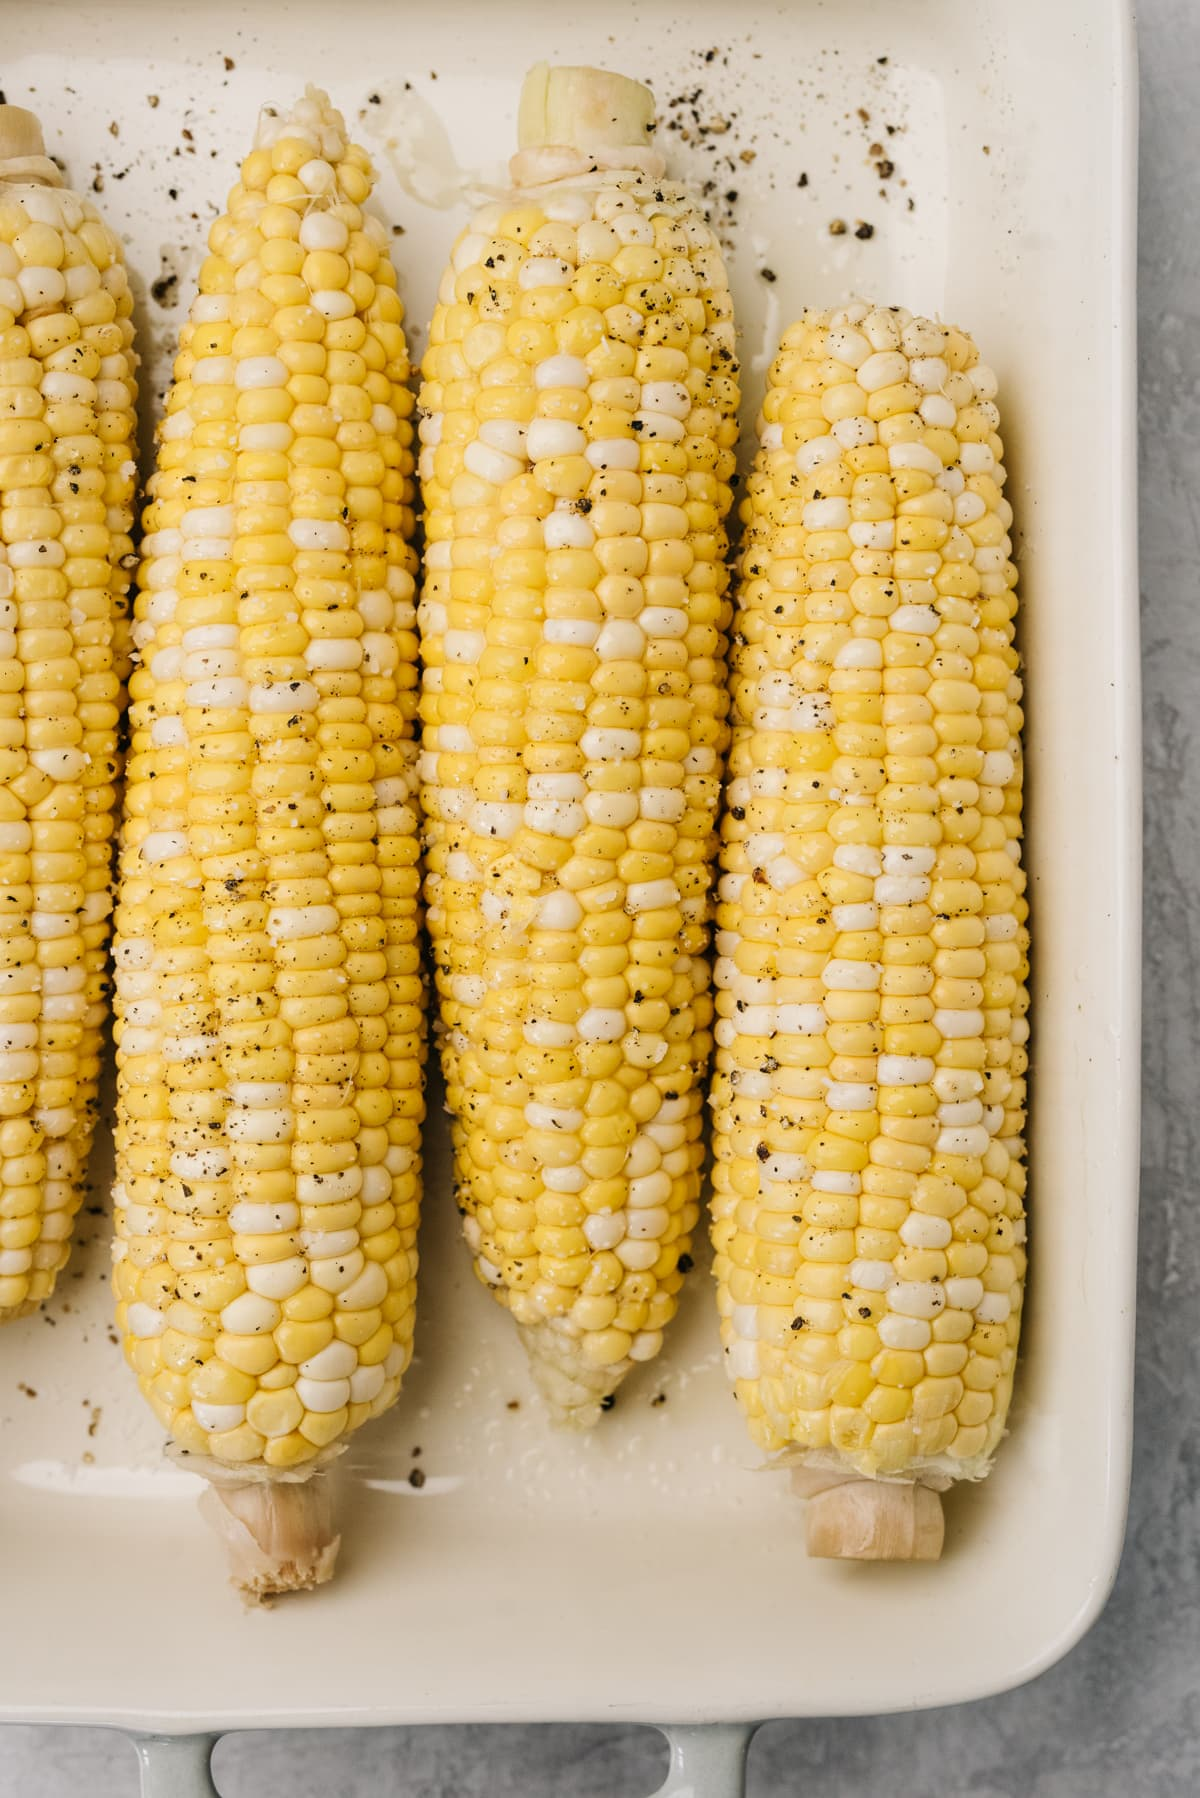 Four ears of corn with husks and silks removed, drizzled with olive oil, salt, and pepper, in a casserole dish.